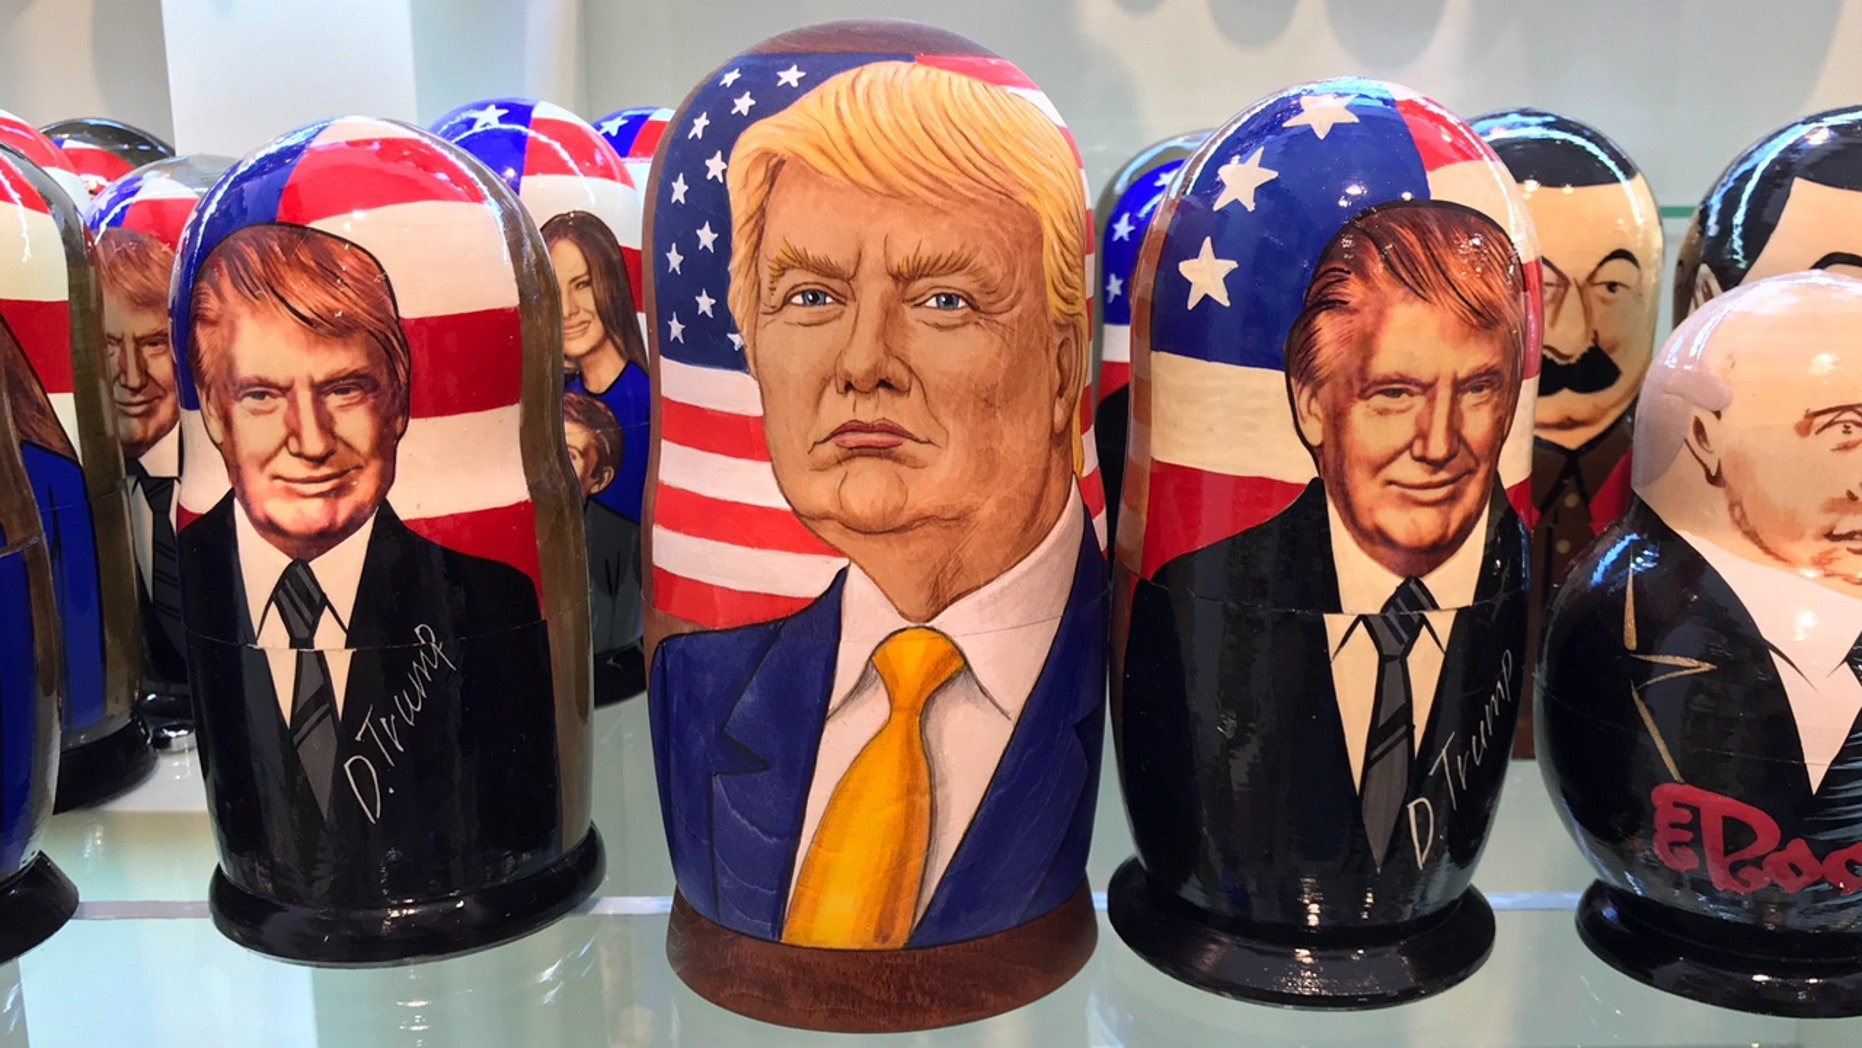 Trump nesting dolls are popular at souvenir shops in Russia.